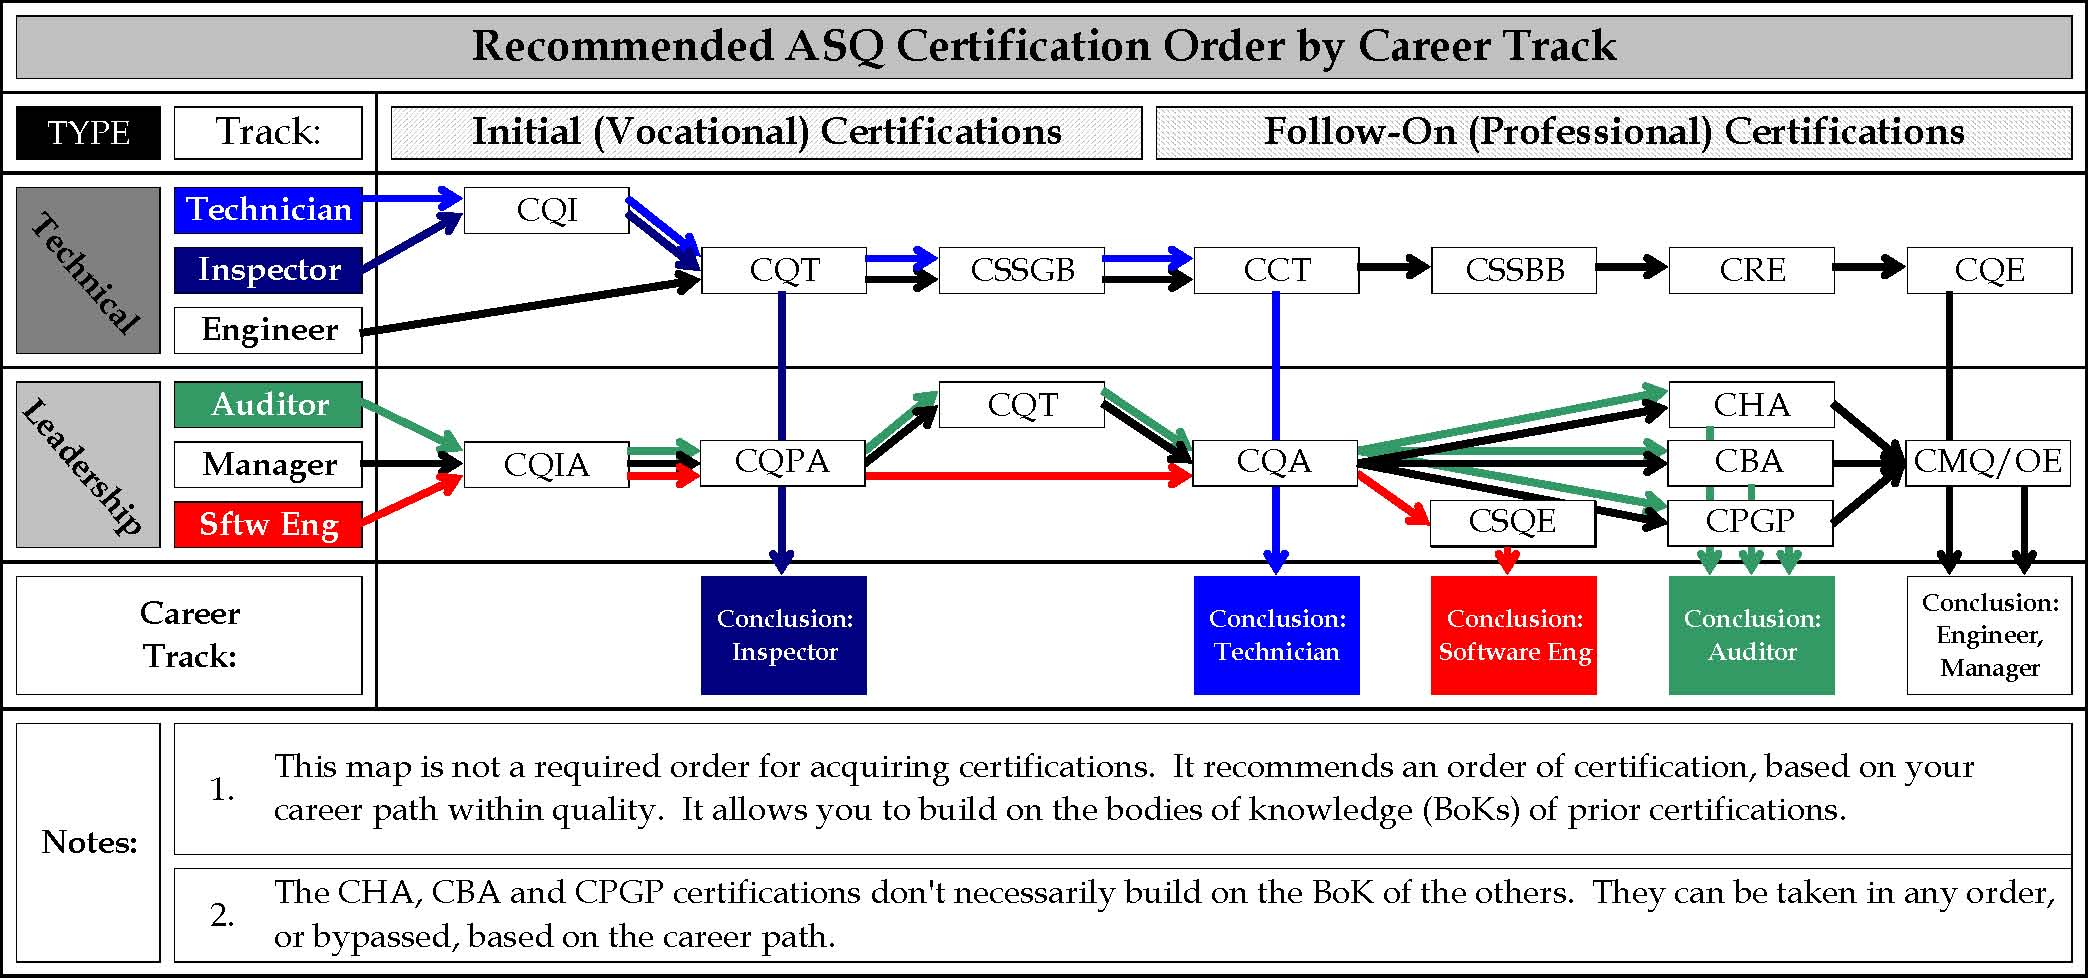 asq_ideal_certification_career_track_jp1